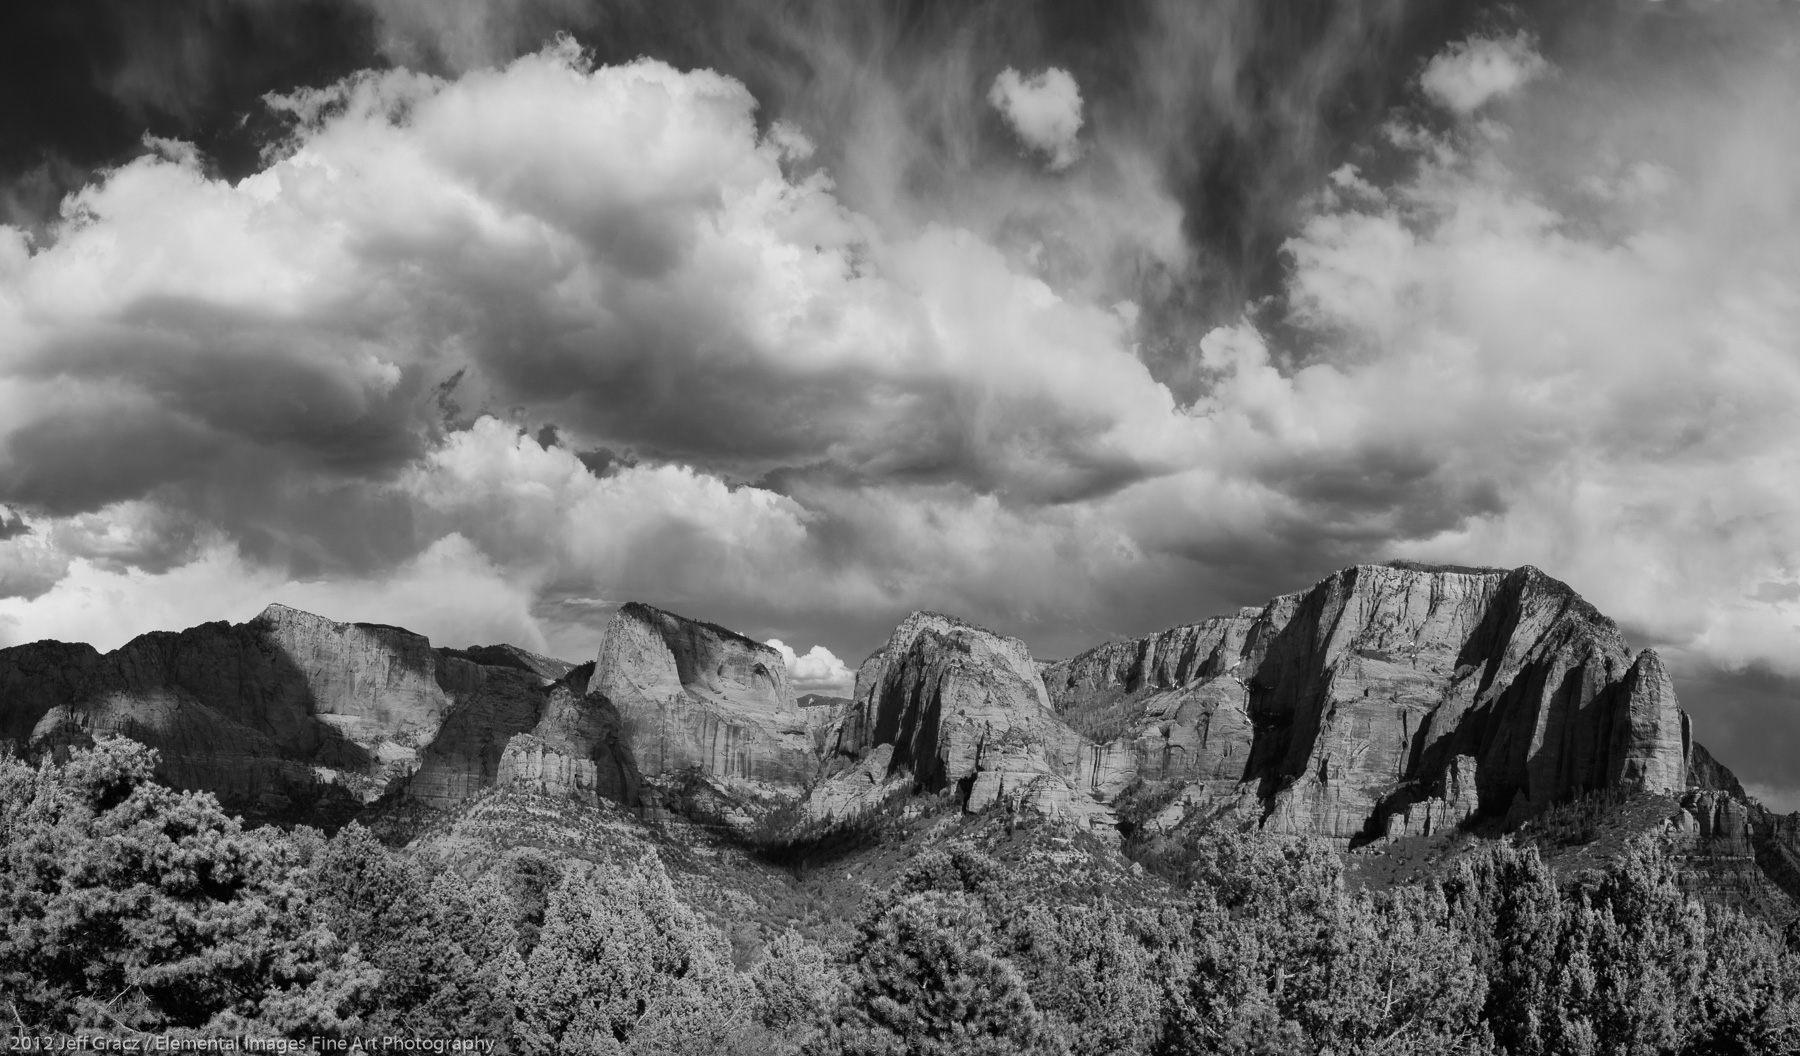 Clouds over the Kolob Canyons   Zion National Park   UT   USA - © 2012 Jeff Gracz / Elemental Images Fine Art Photography - All Rights Reserved Worldwide